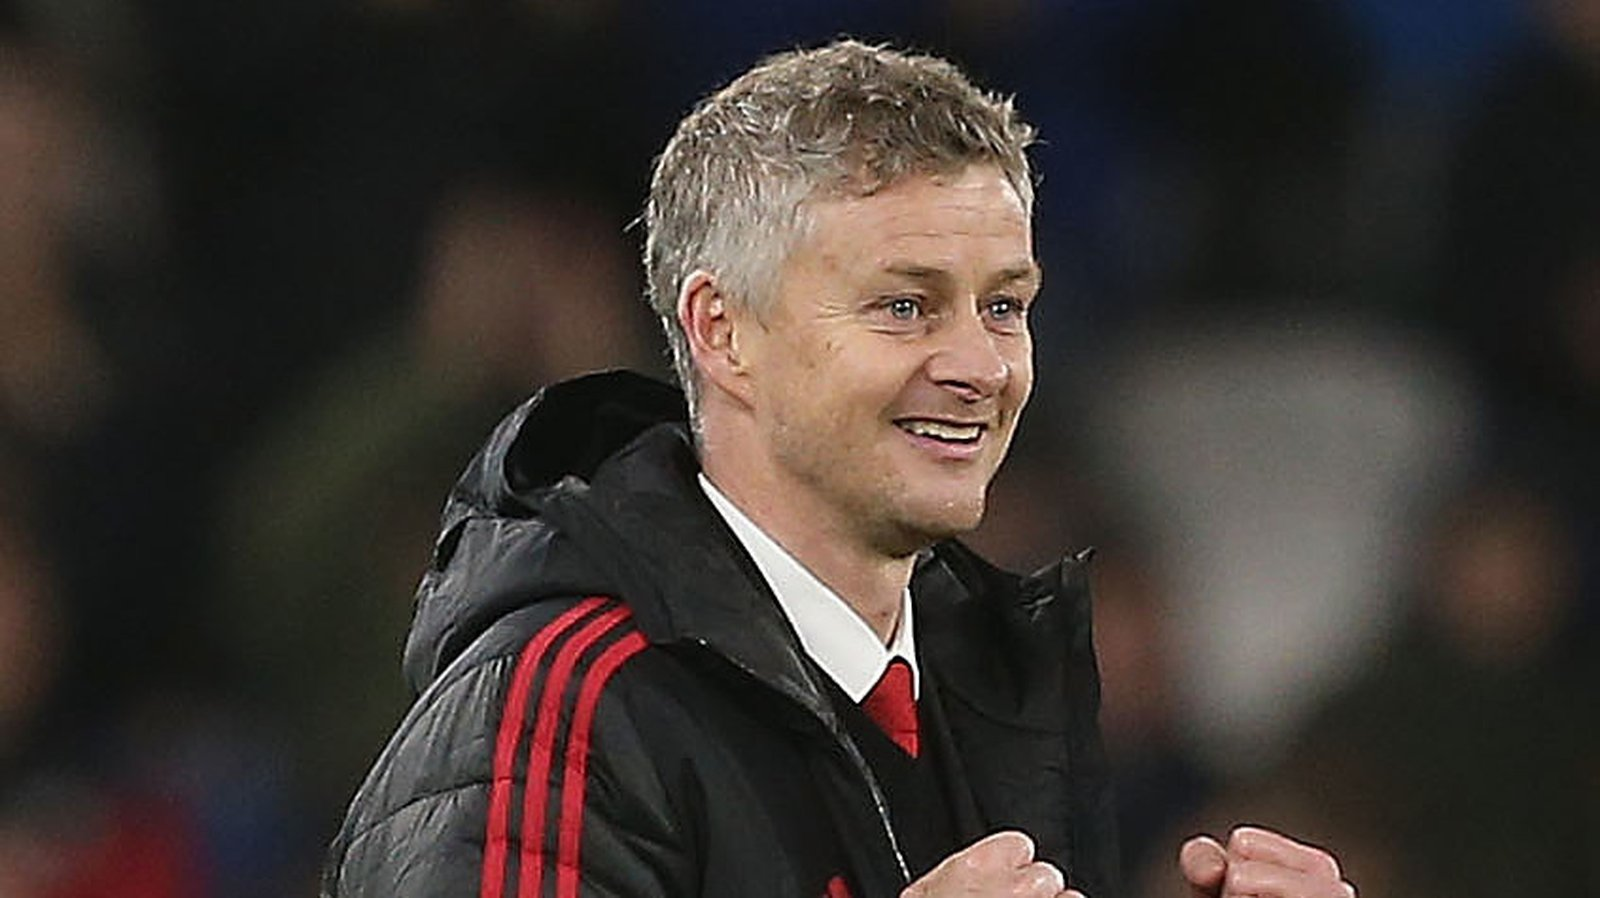 Solskjaer has asked to secure signing of 23-year-old playmaker for Man Utd